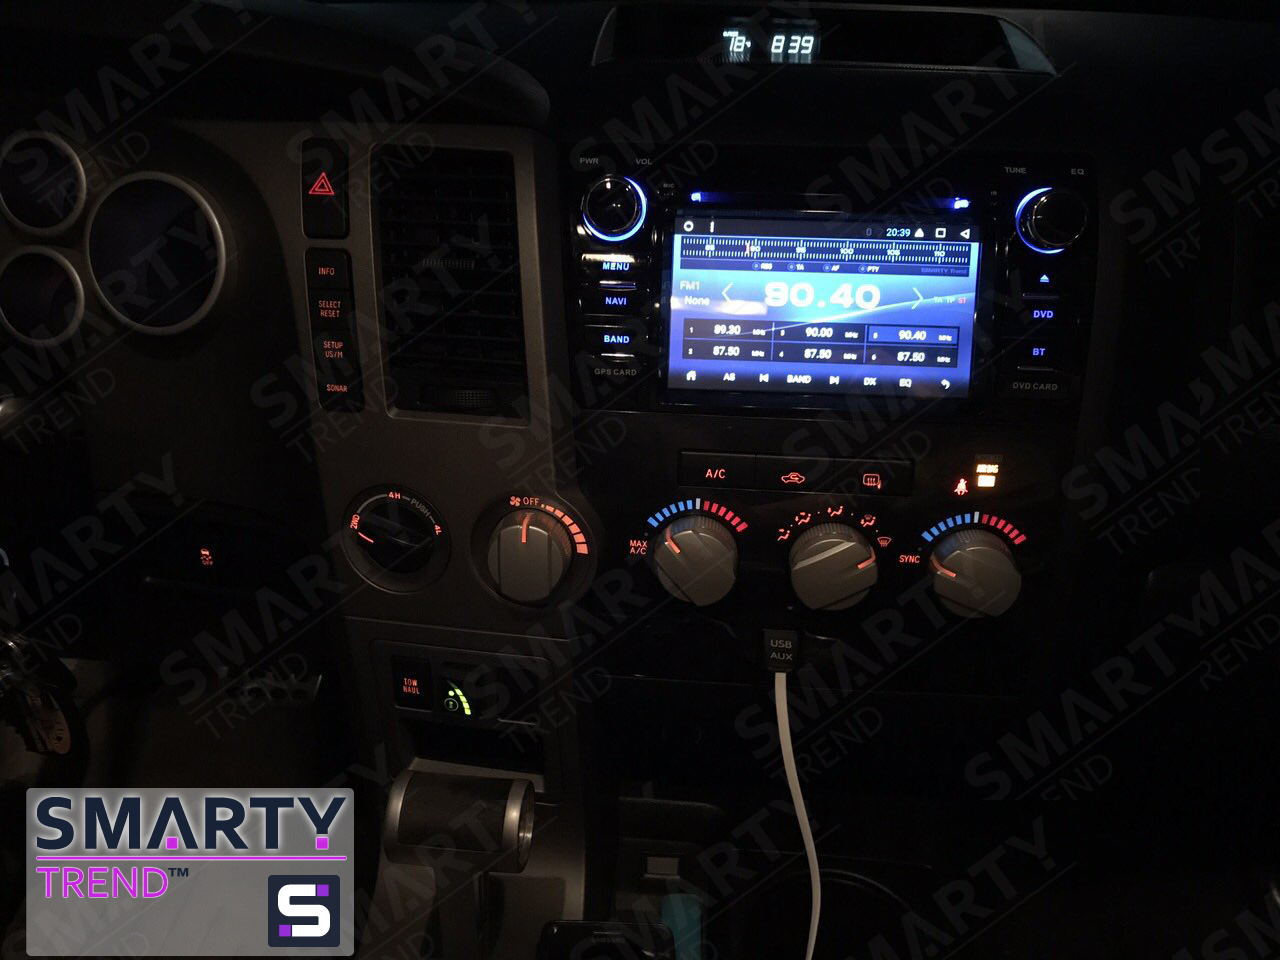 The SMARTY Trend head unit for Toyota Sequoia